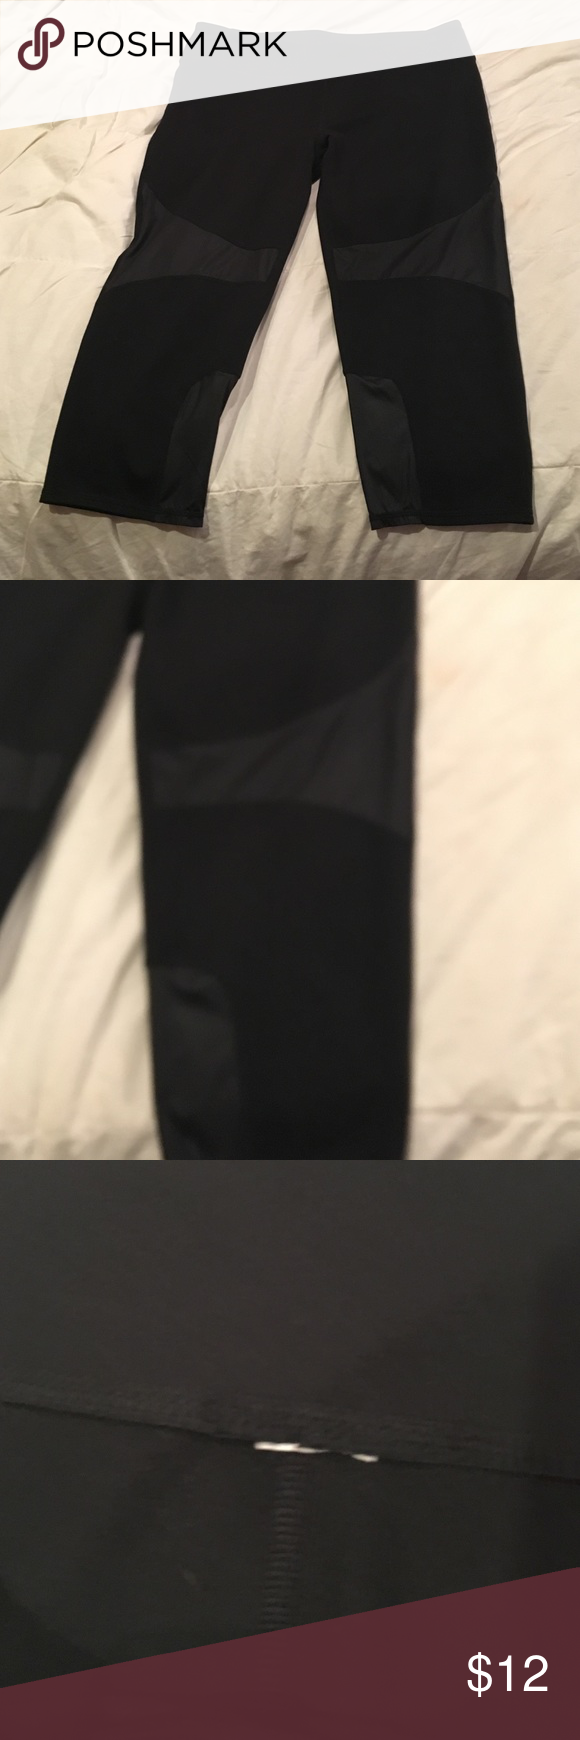 Fabletics Capri Black Capri with sheer accent at thigh and calf. Tag at waist has been removed because it rubbed. Worn once. Washed. Fabletics Pants Capris